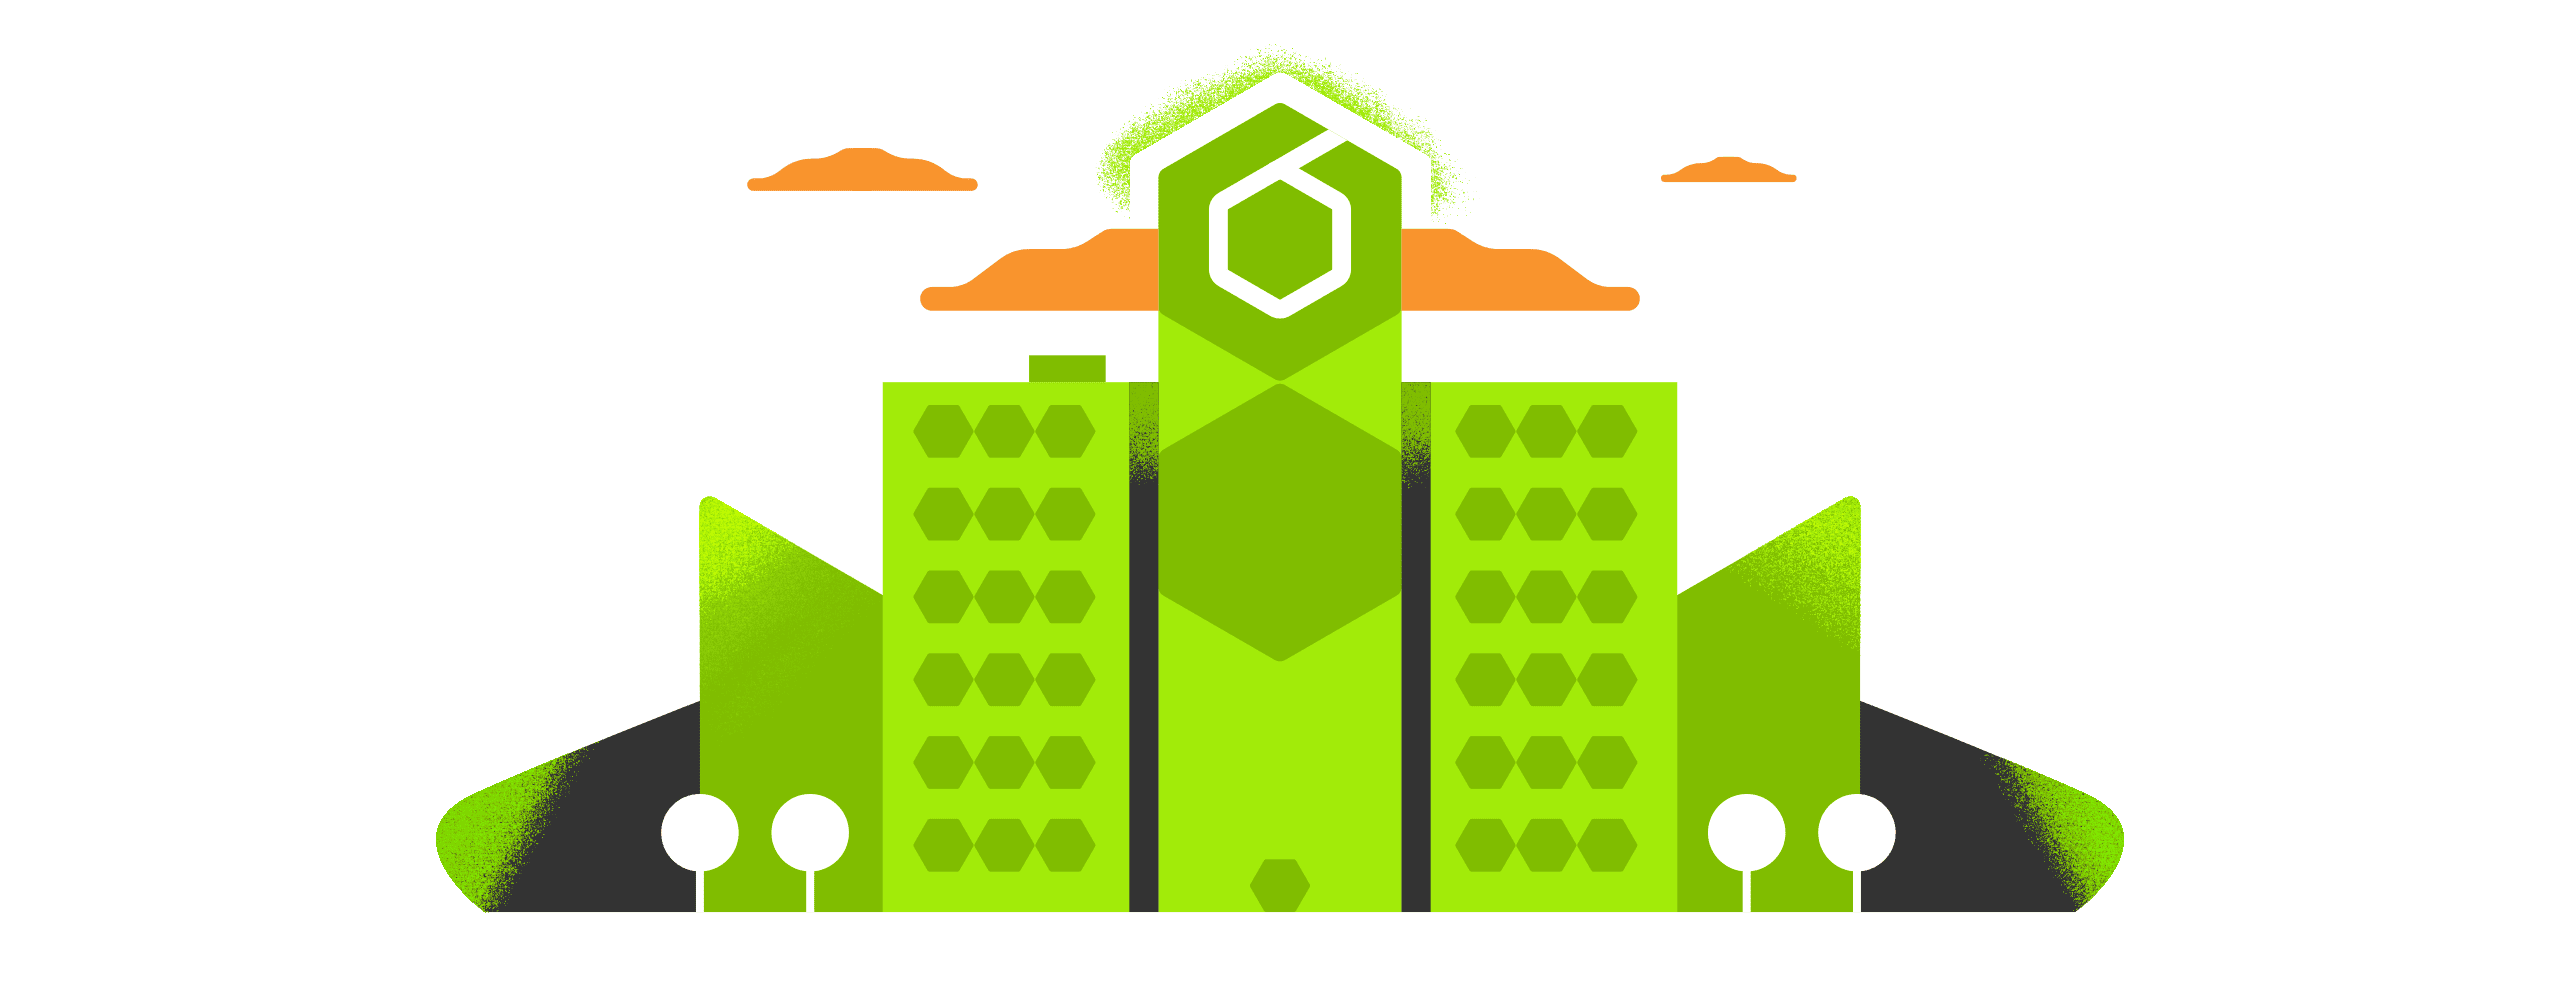 6 Main Reasons Why Node.js Has Become a Standard for Enterprise-Level Organizations